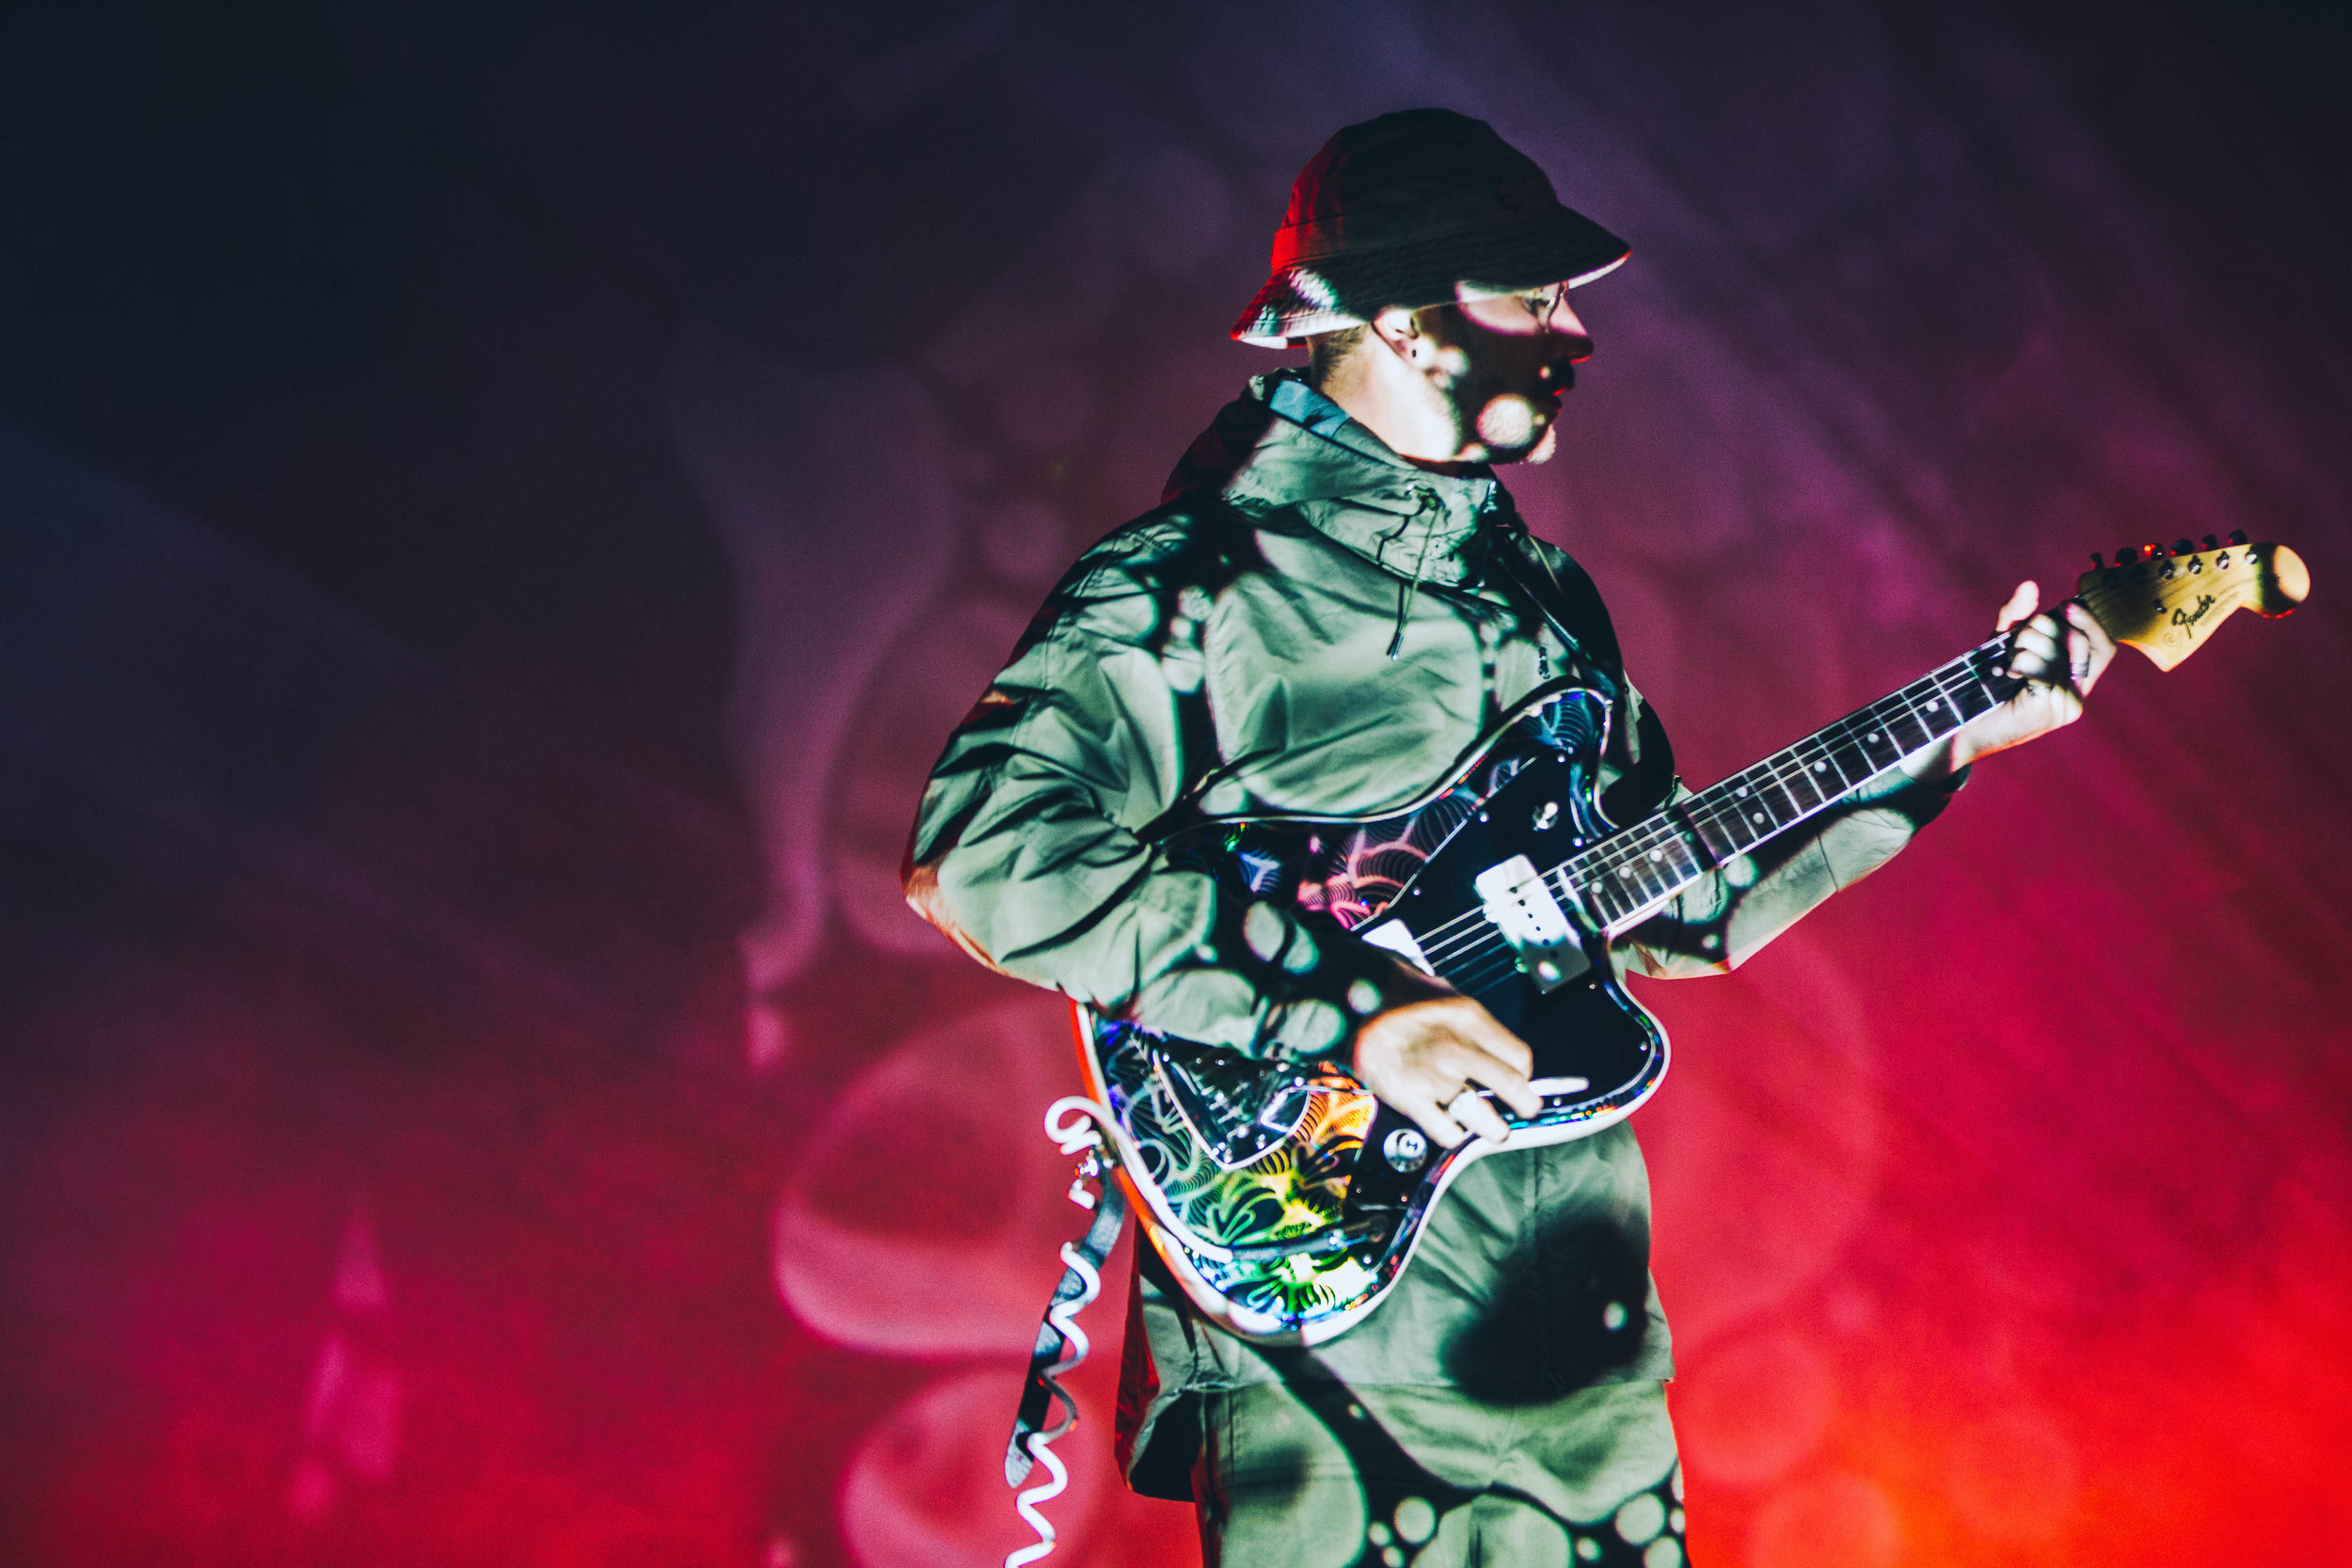 portugal-the-man-concert-white-oak-music-hall-houston-kirby-gladstein-2017-1